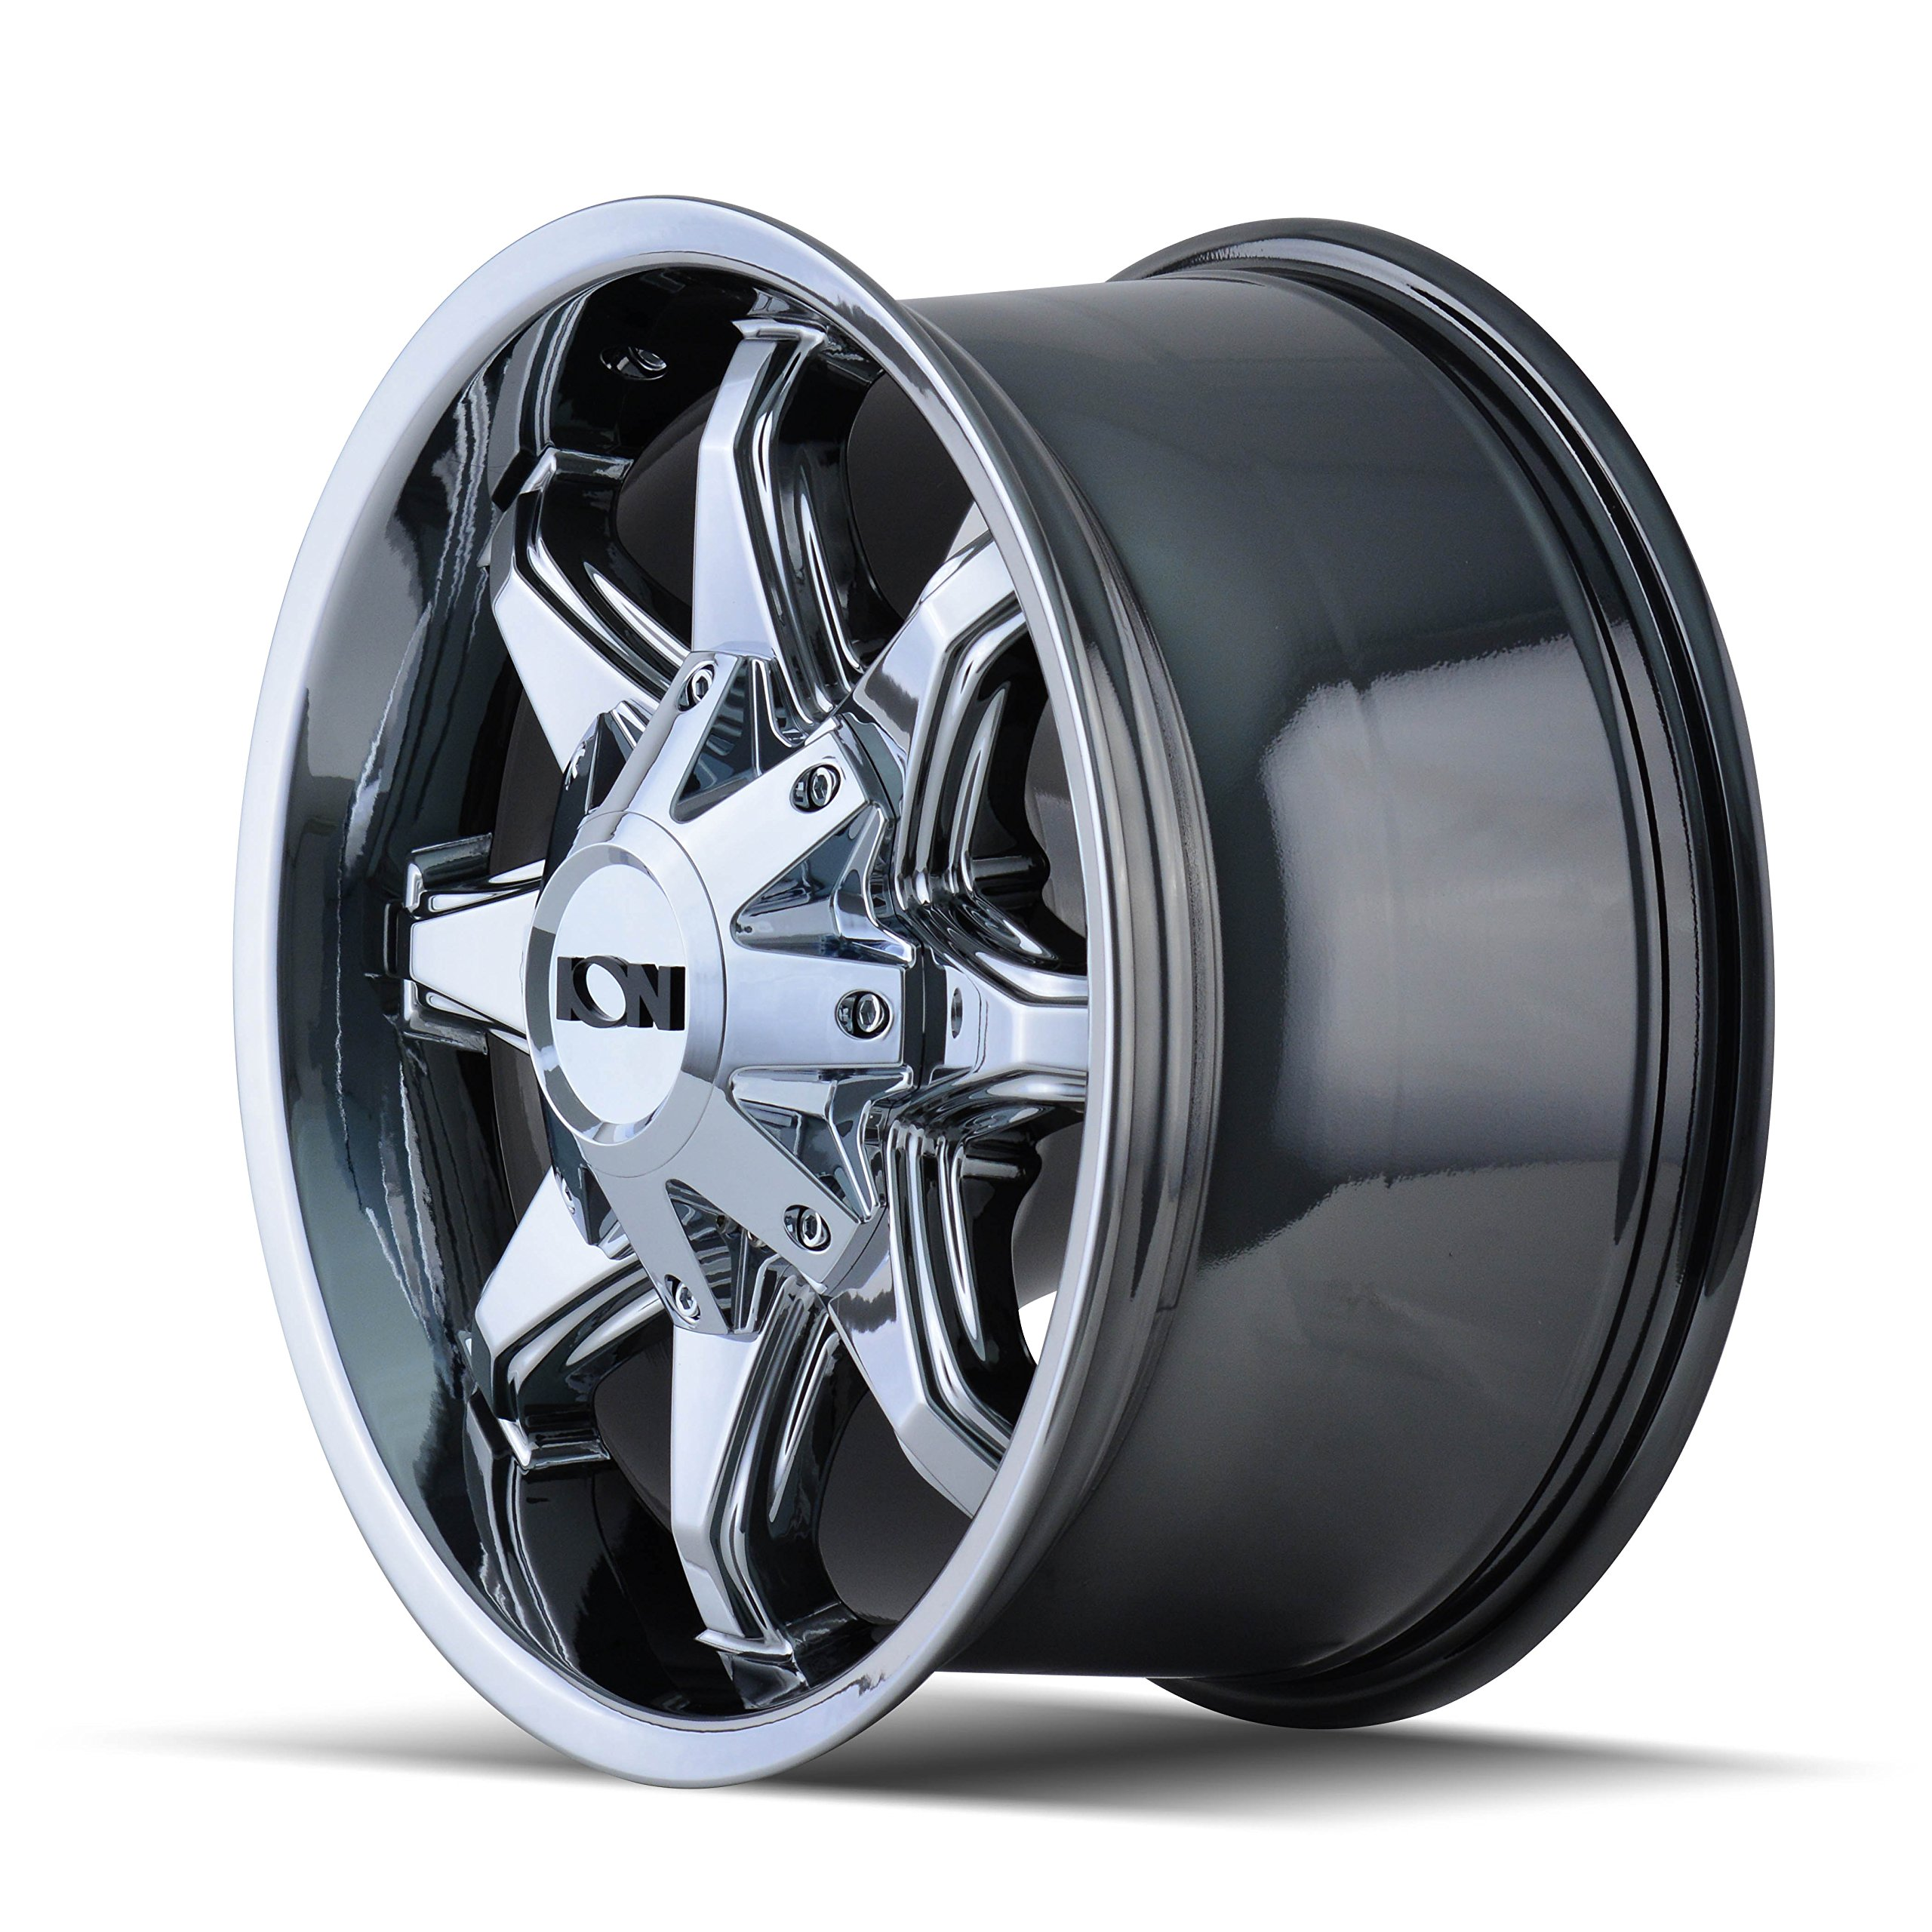 Ion Alloy Style 181 Wheel with PVD Finish (20x9''/8x180mm) by Ion Alloy (Image #2)